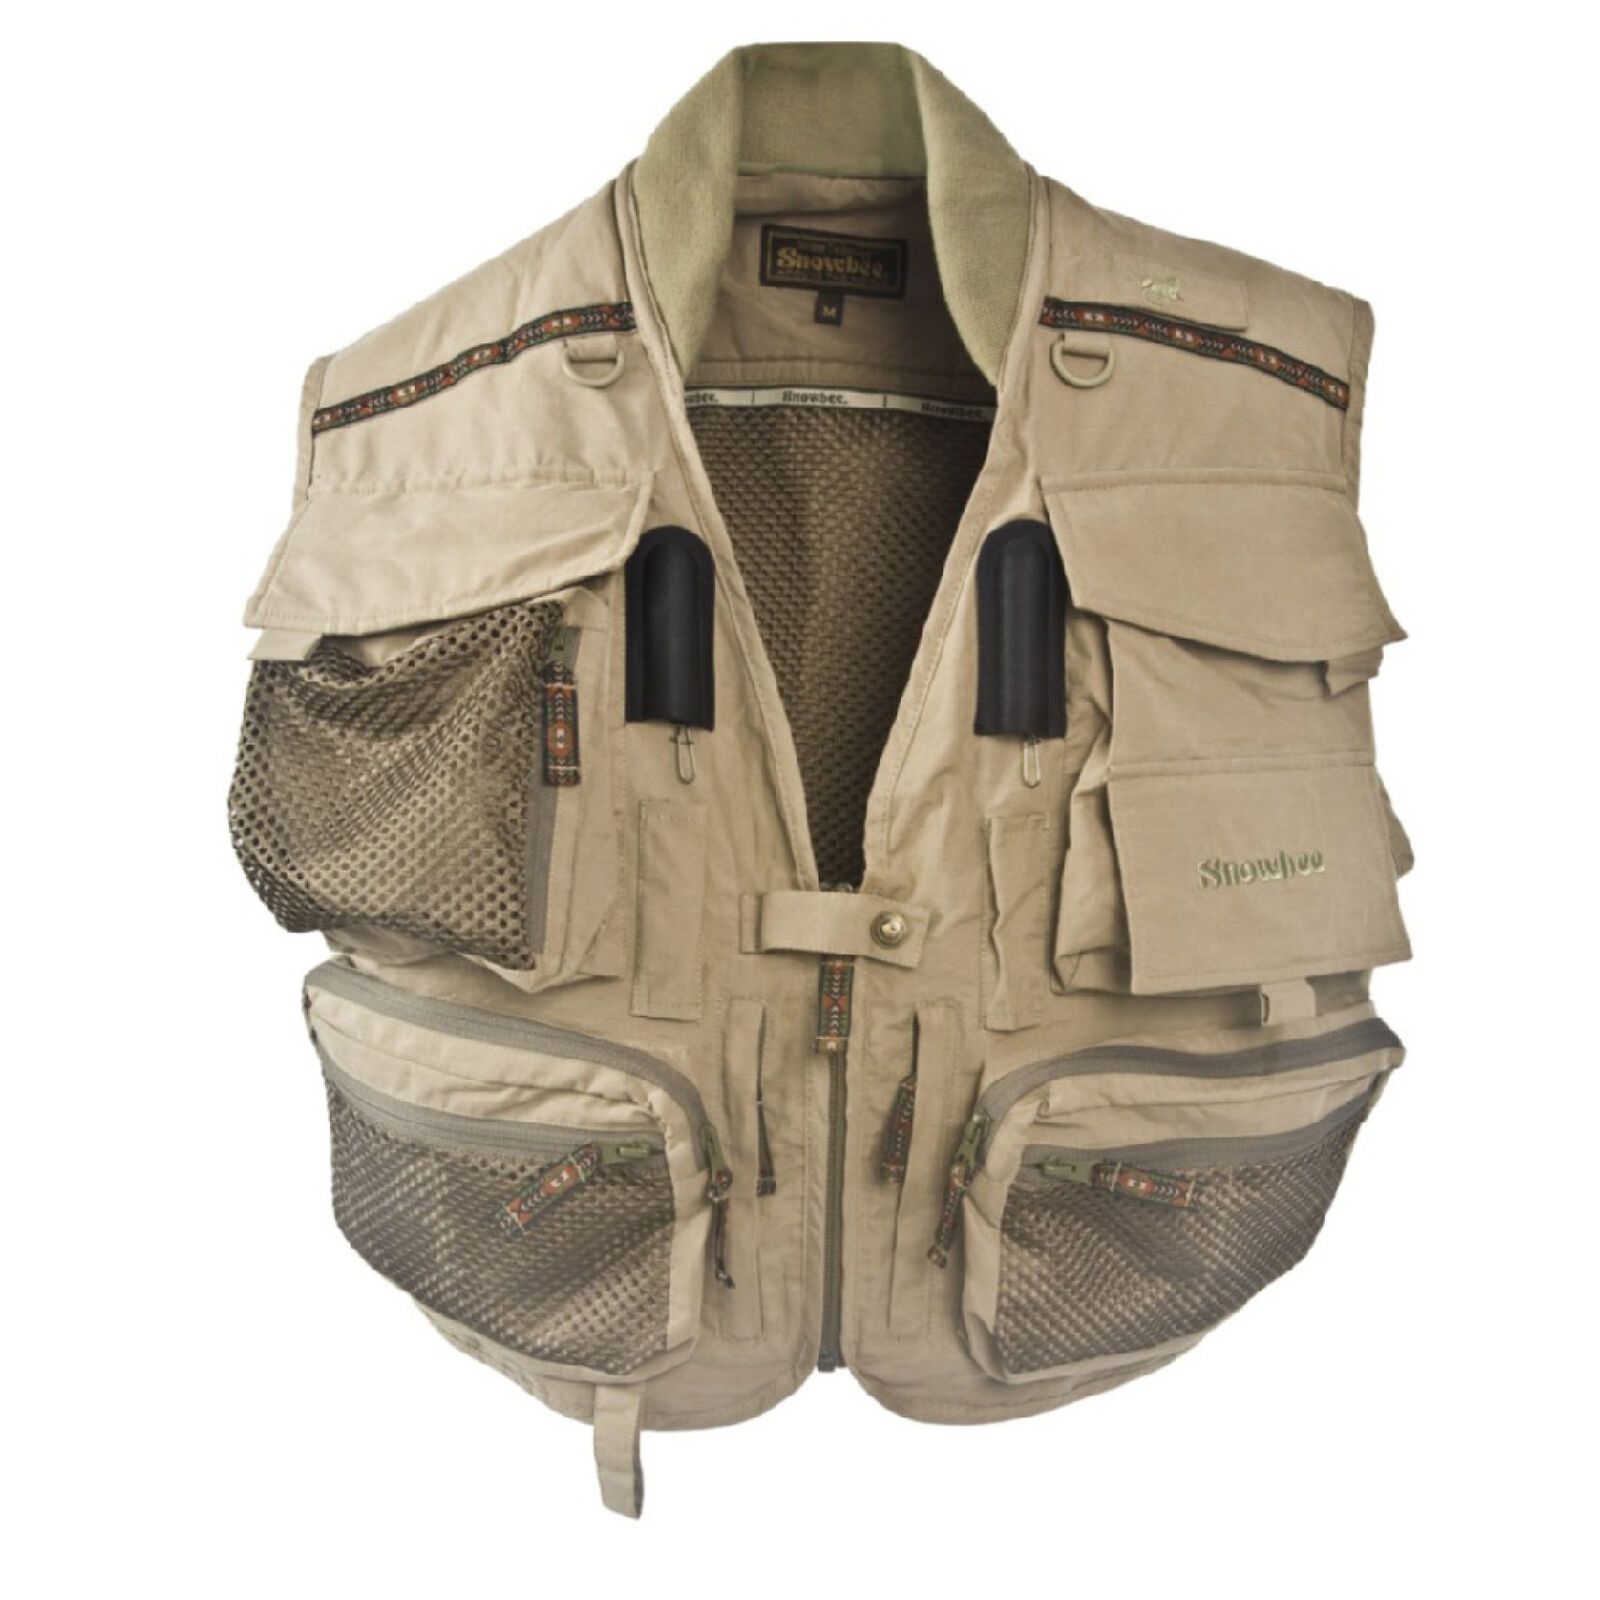 Snowbee GEO FLY FISHING VEST